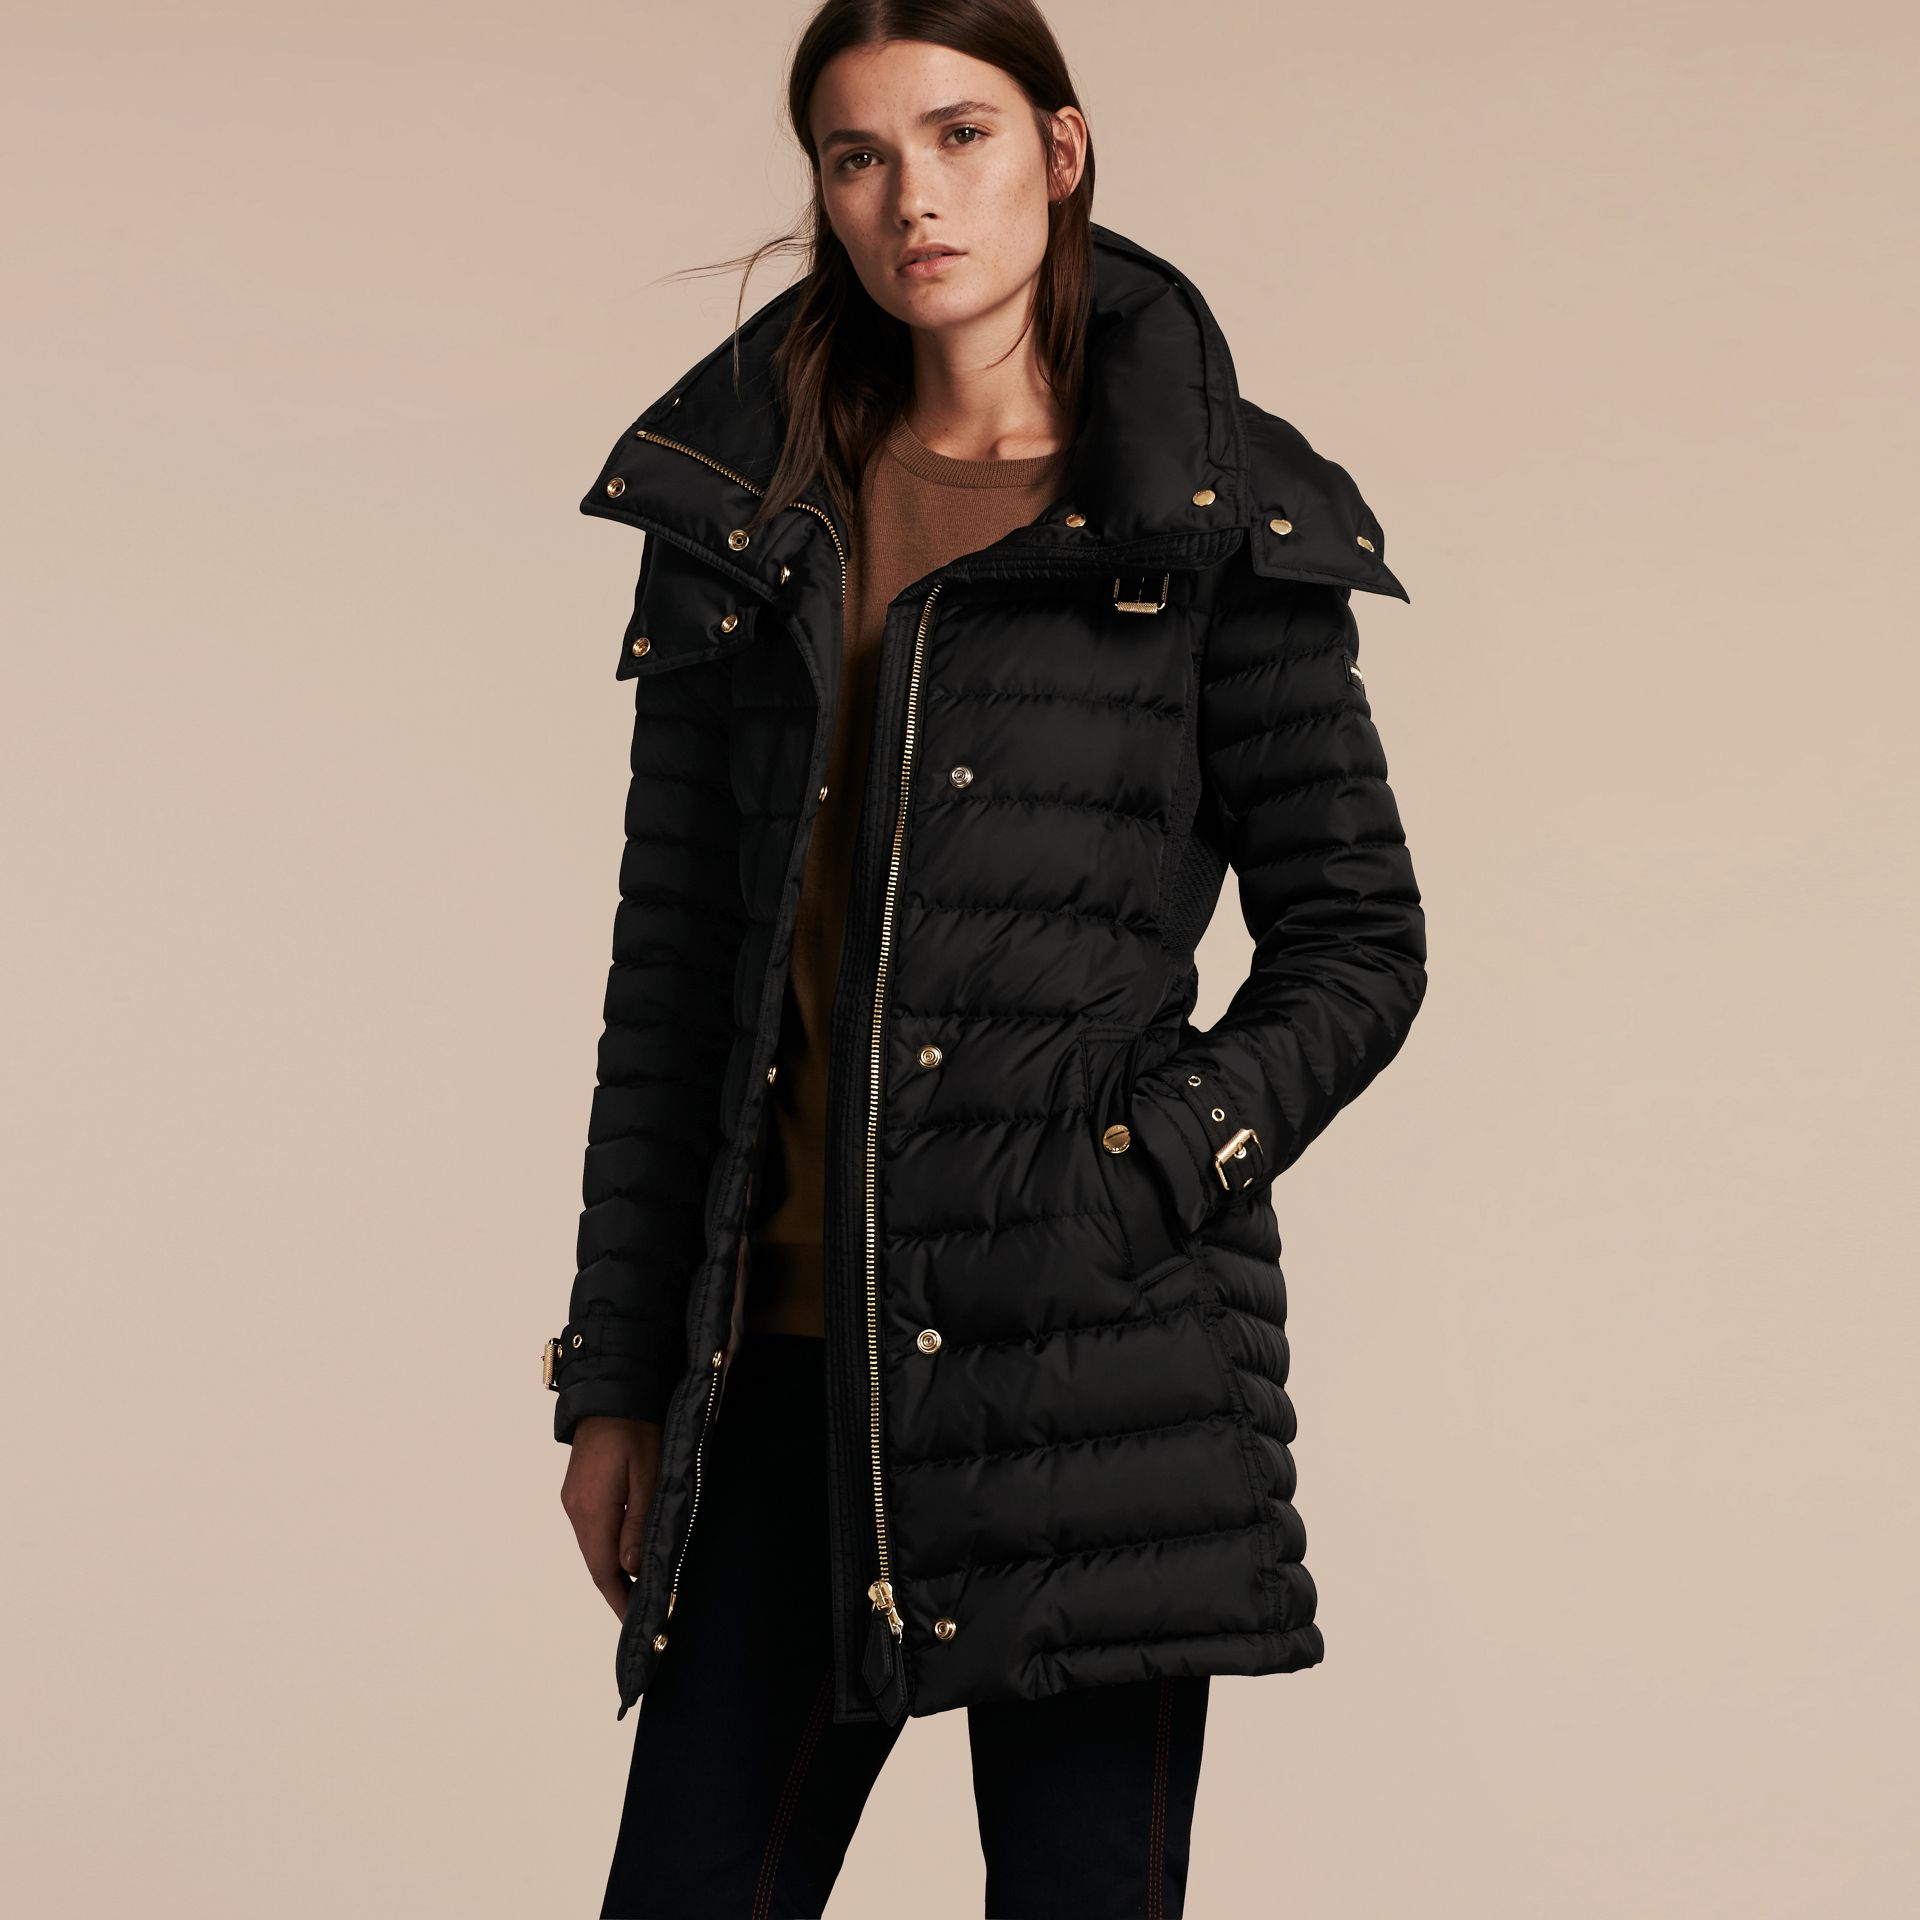 Down-filled Puffer Jacket with Packaway Hood in Black - Women | Burberry - gallery image 7